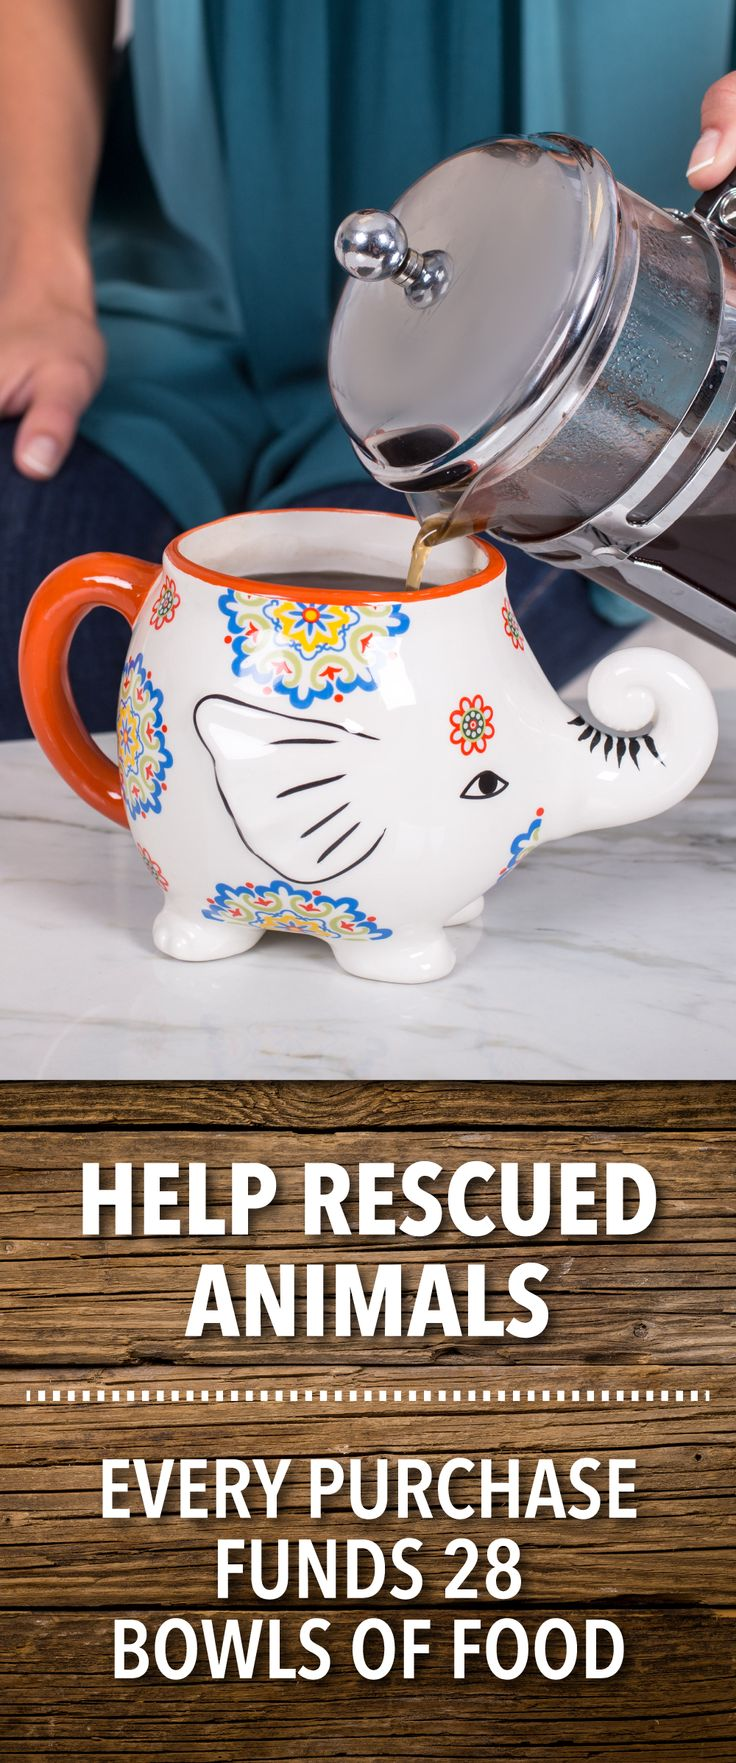 Add a dollop of delight to your day! This sunny elephant mug shimmers with a bright floral motif and a lively red handle to get your day off to a happy start.